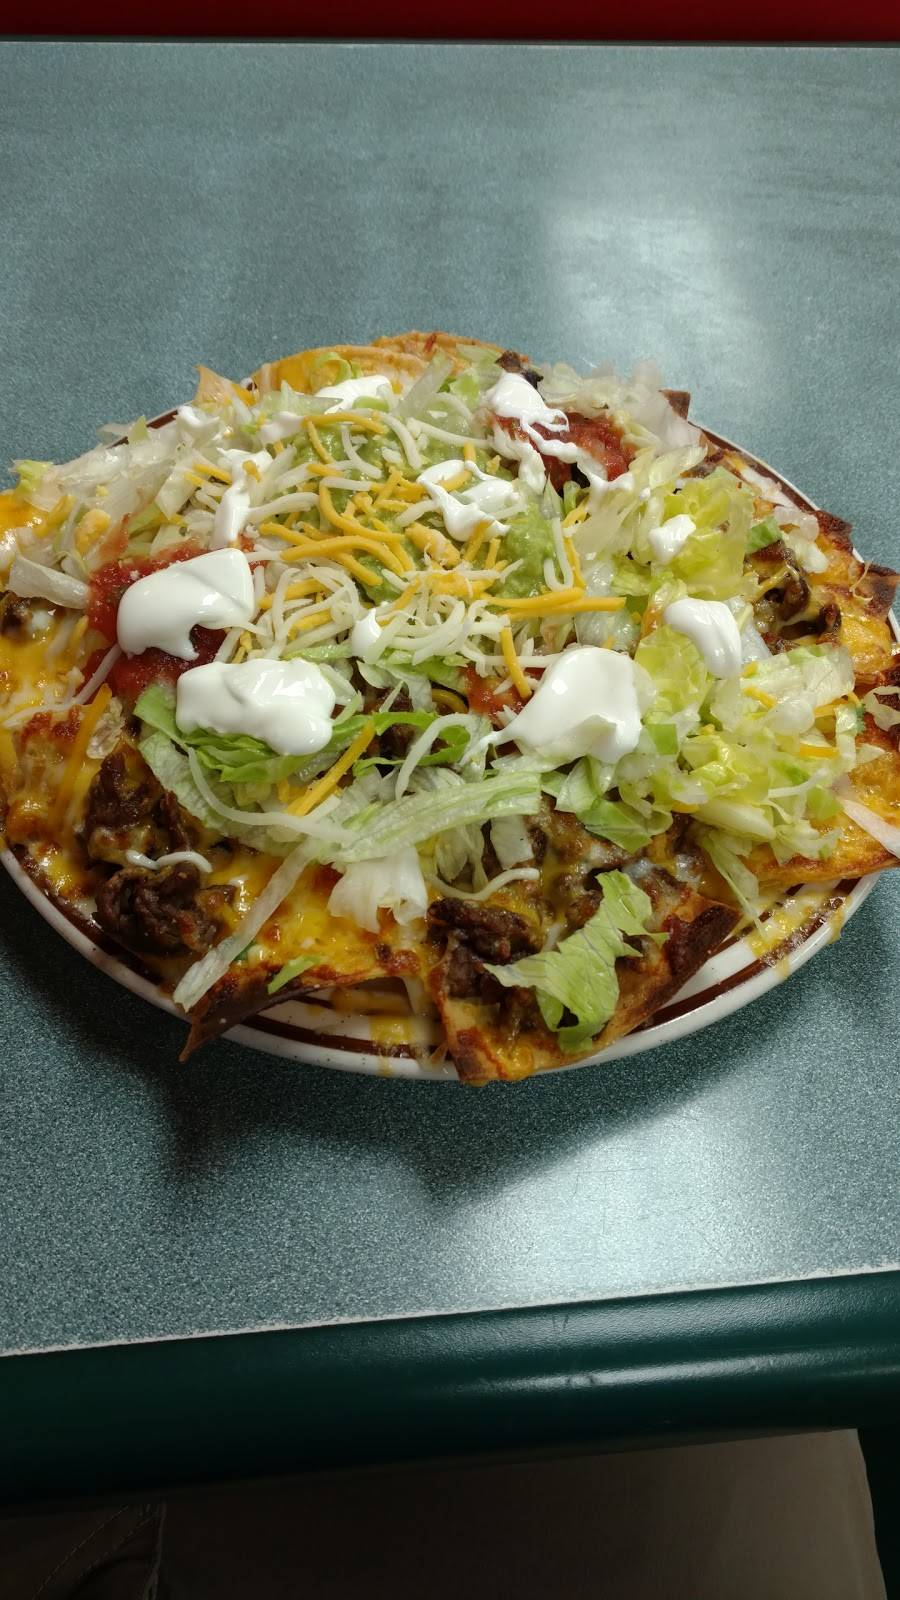 Taco King - meal delivery  | Photo 4 of 10 | Address: 1330 Huffman Rd, Anchorage, AK 99515, USA | Phone: (907) 771-6053